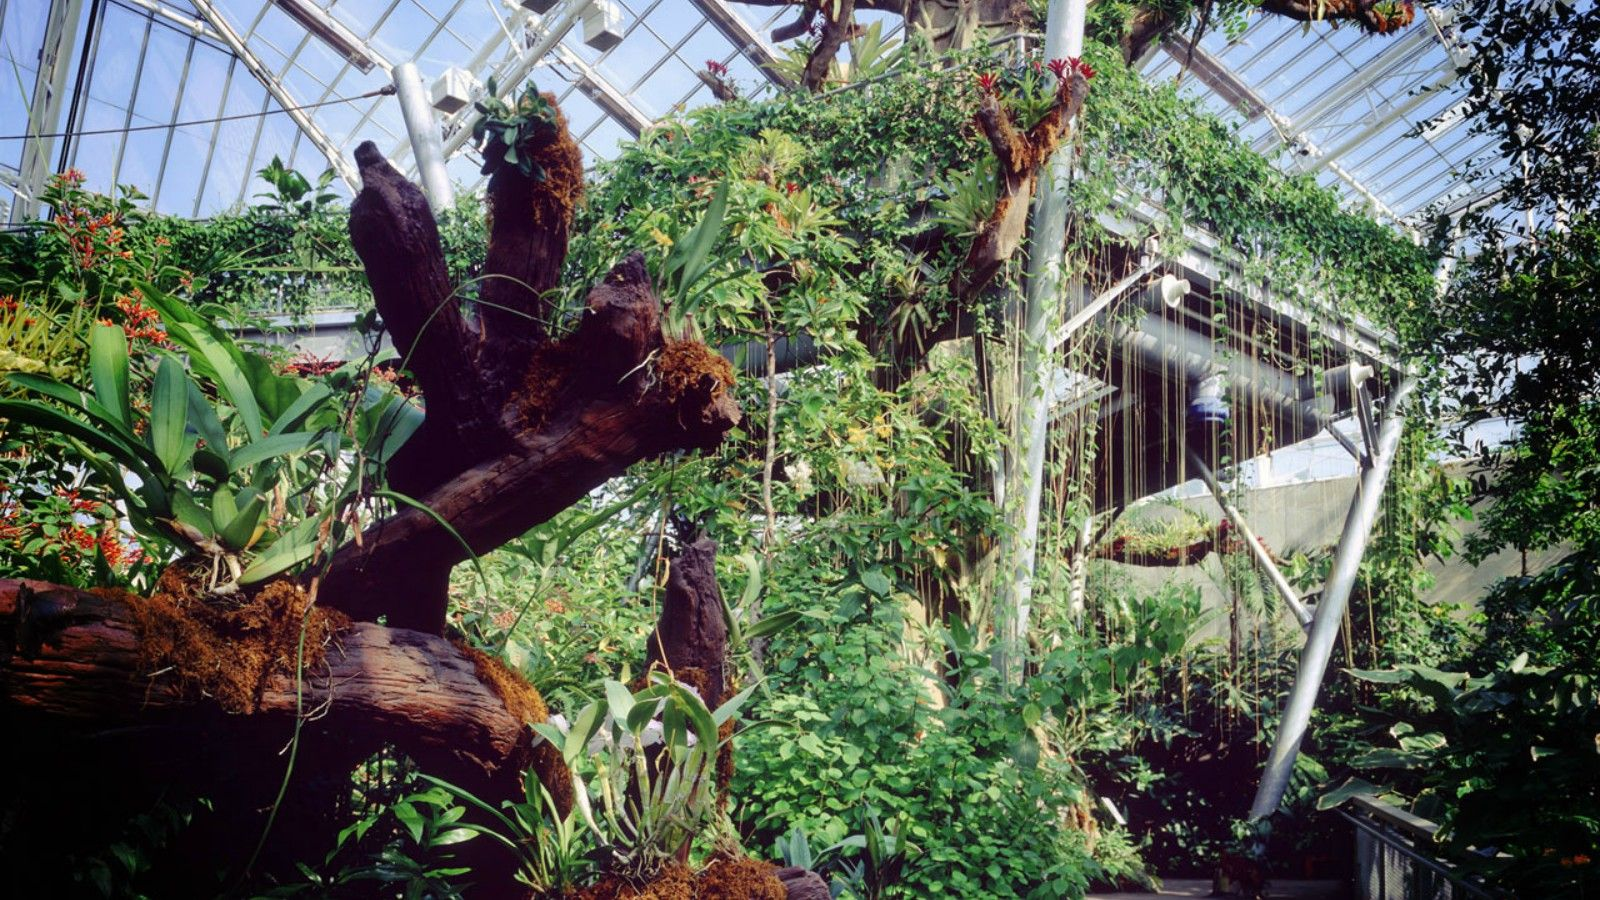 Things to do in Cleveland - Cleveland Botanical Garden